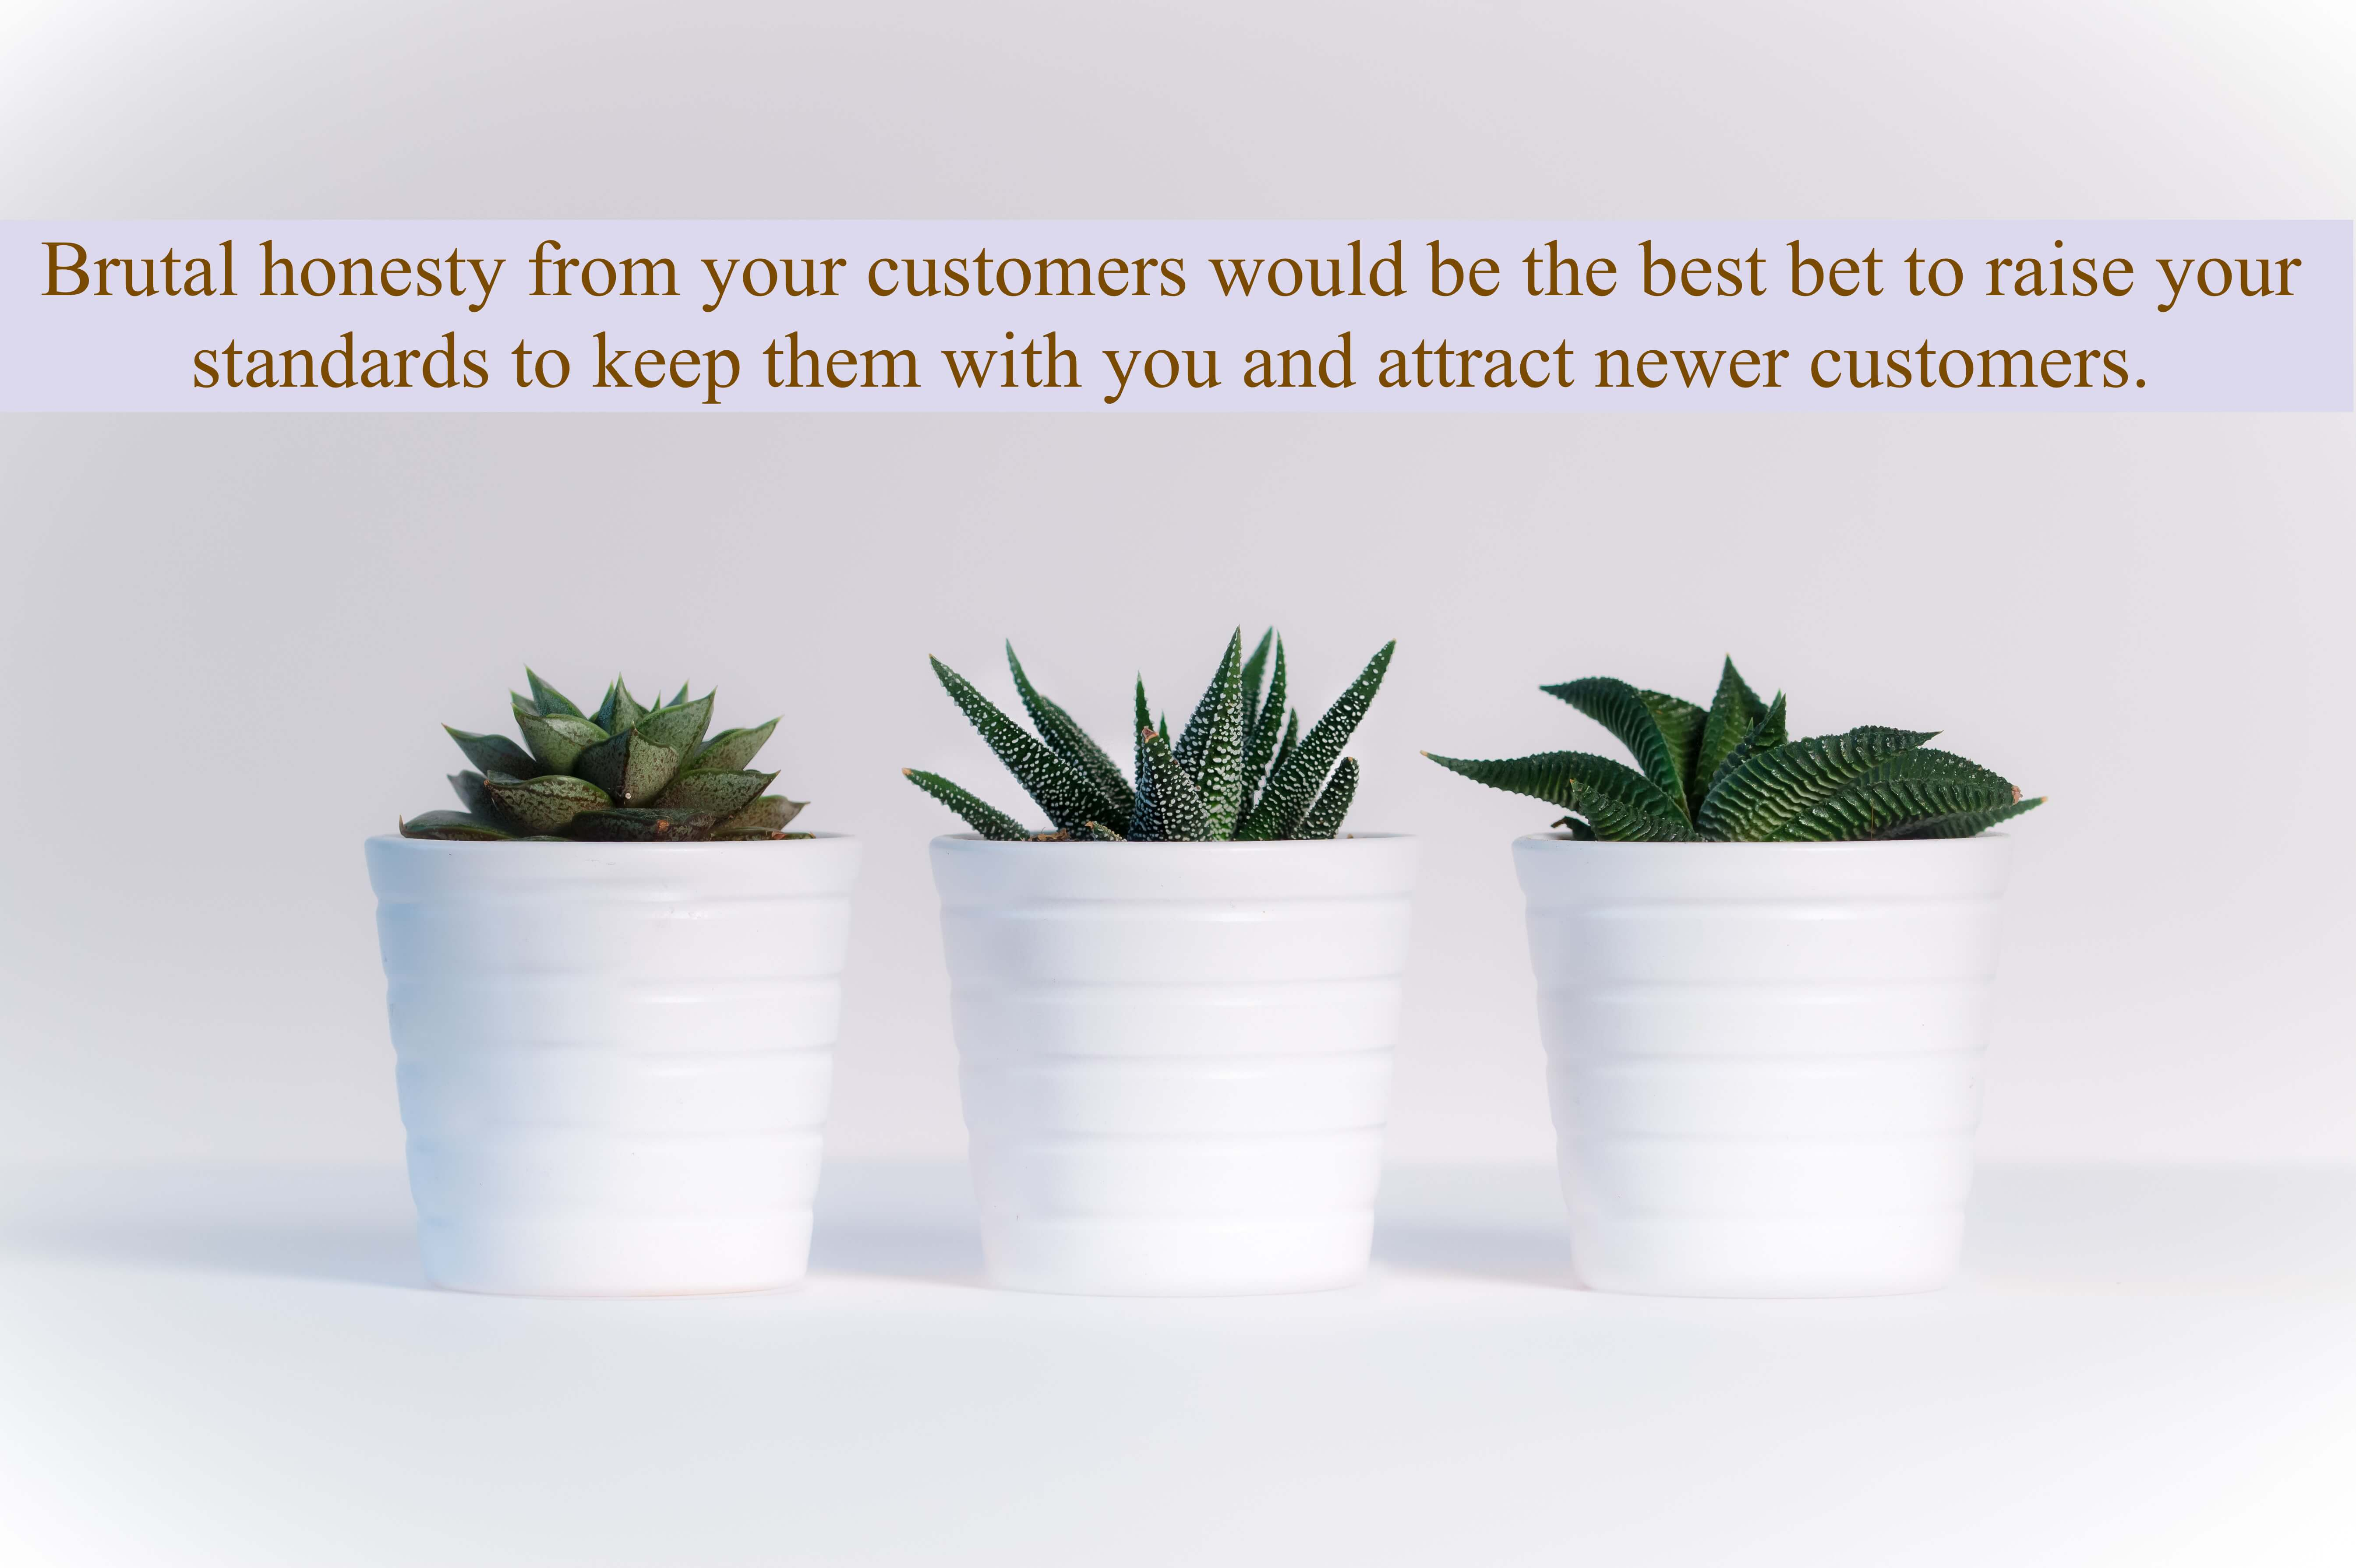 Brutal honesty from your customers would be the best bet to raise your standards to keep them with you and attract newer customers.